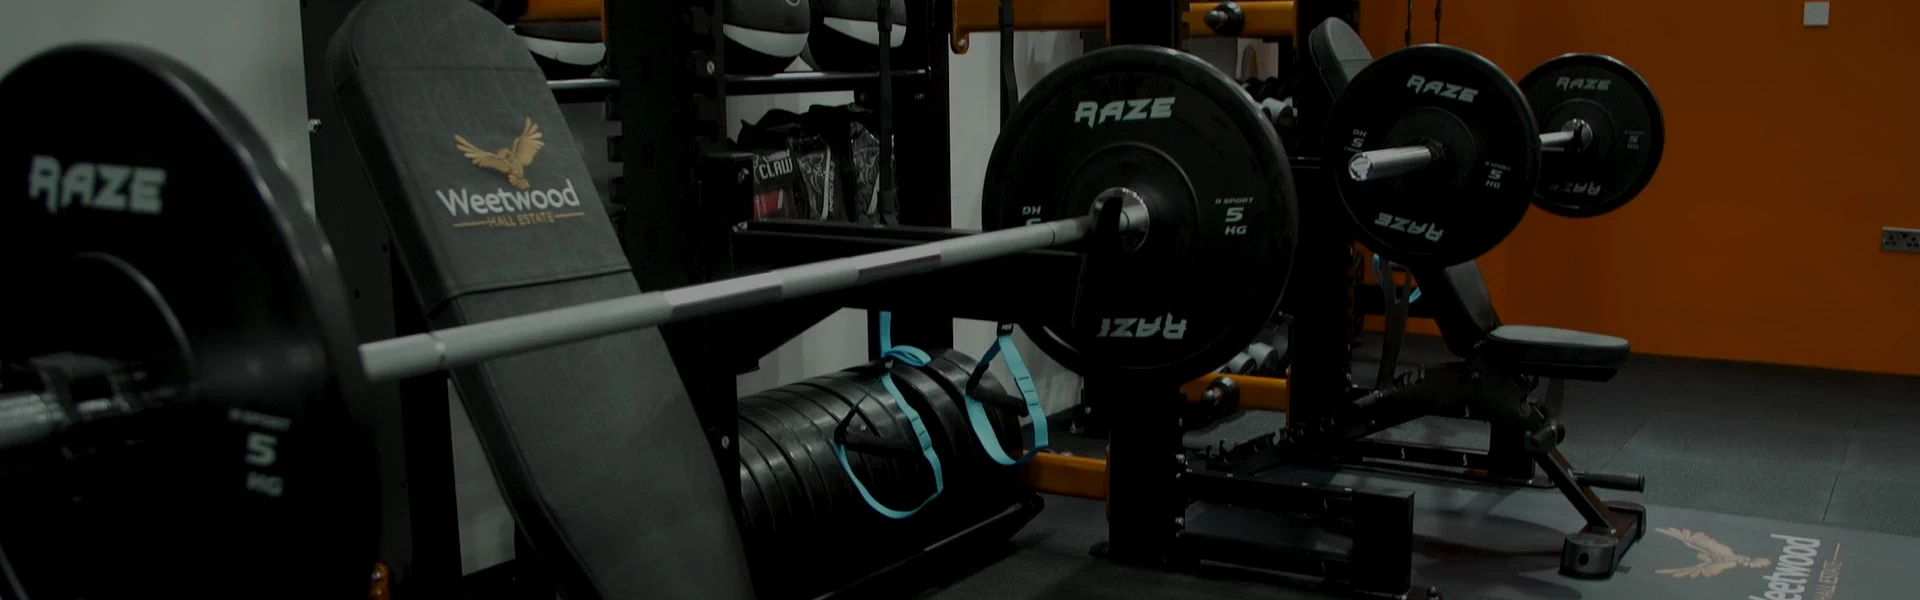 Bench Press, Exercies Equipment